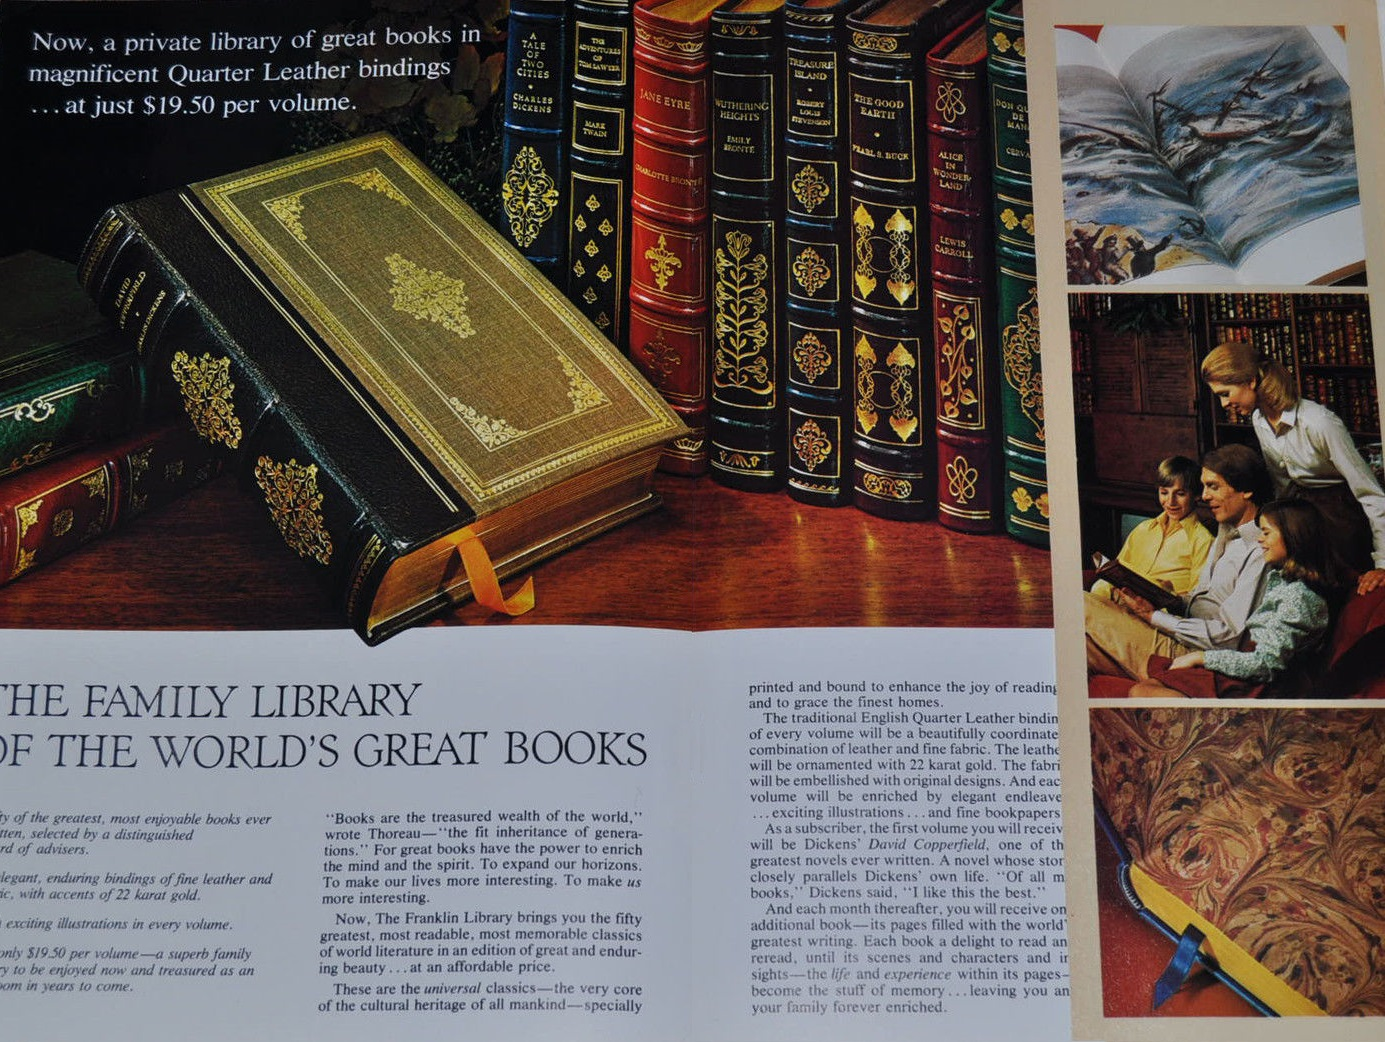 Family Library of the World's Great Books